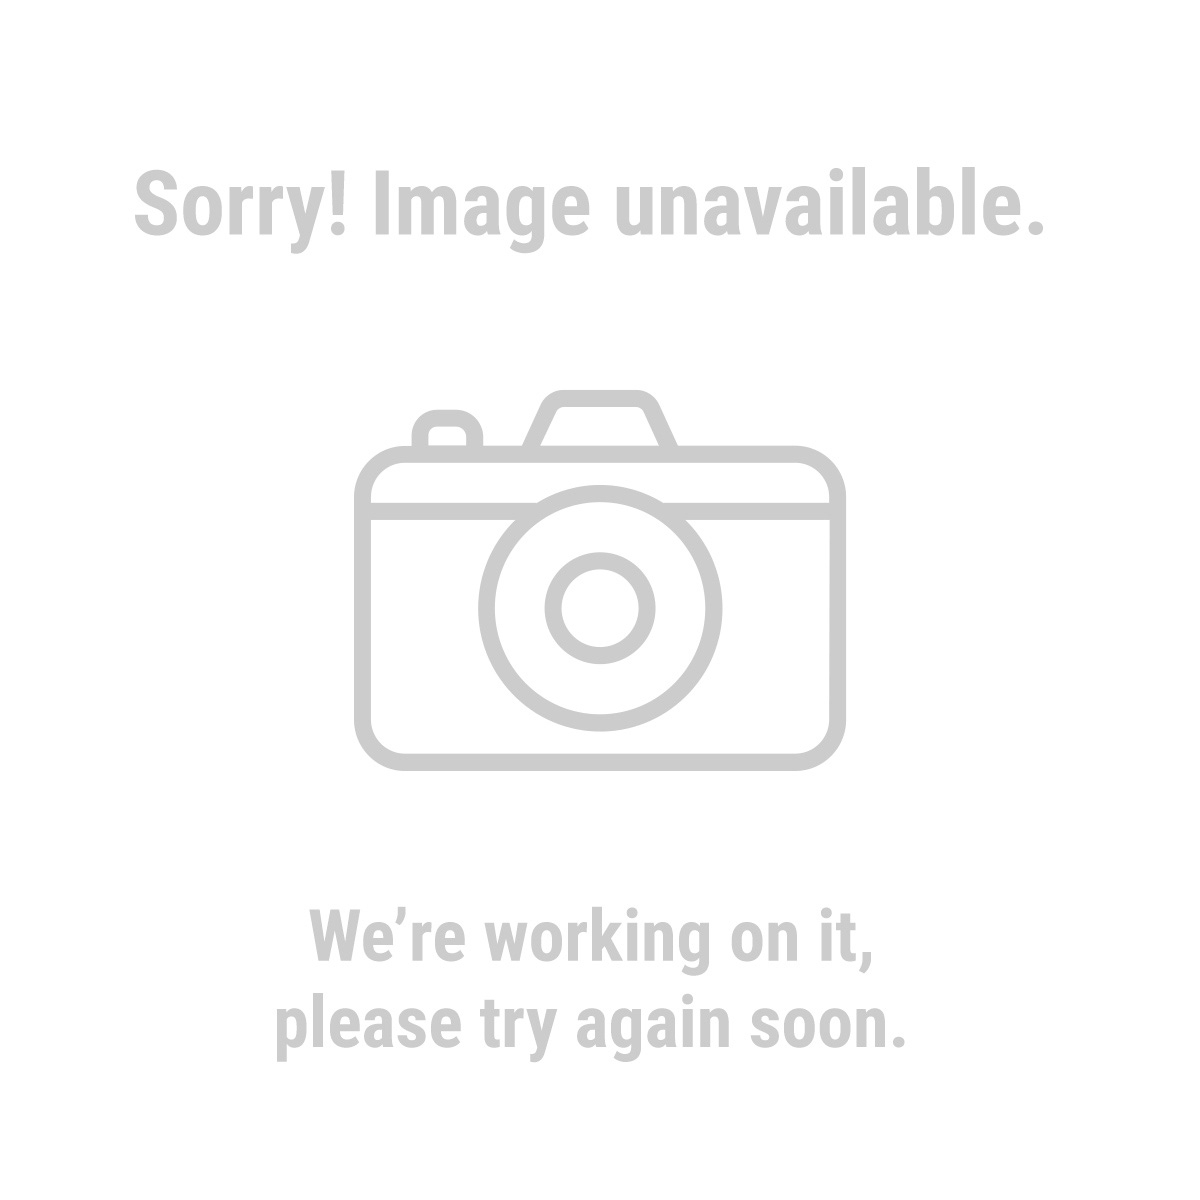 Cen-Tech 69465 Infrared Thermometer with Laser Targeting, Non-Contact